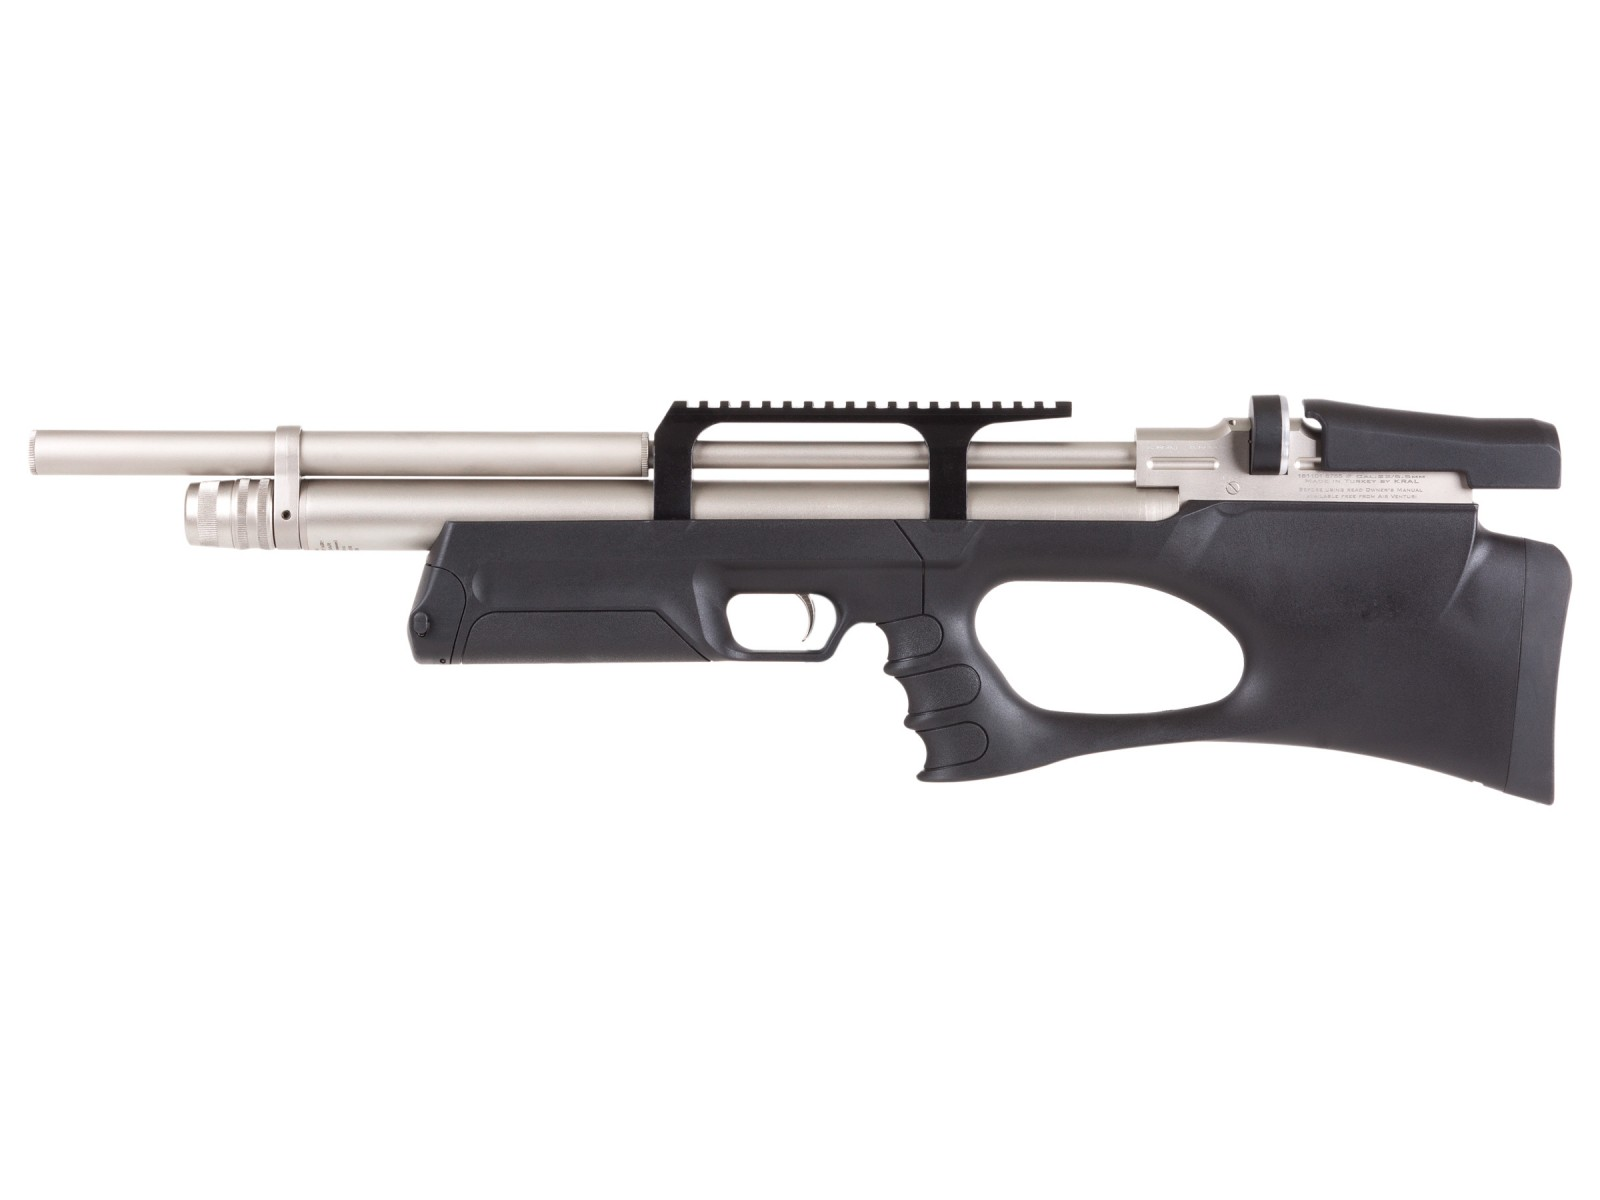 Puncher Breaker Silent Marine Sidelever PCP Air Rifle